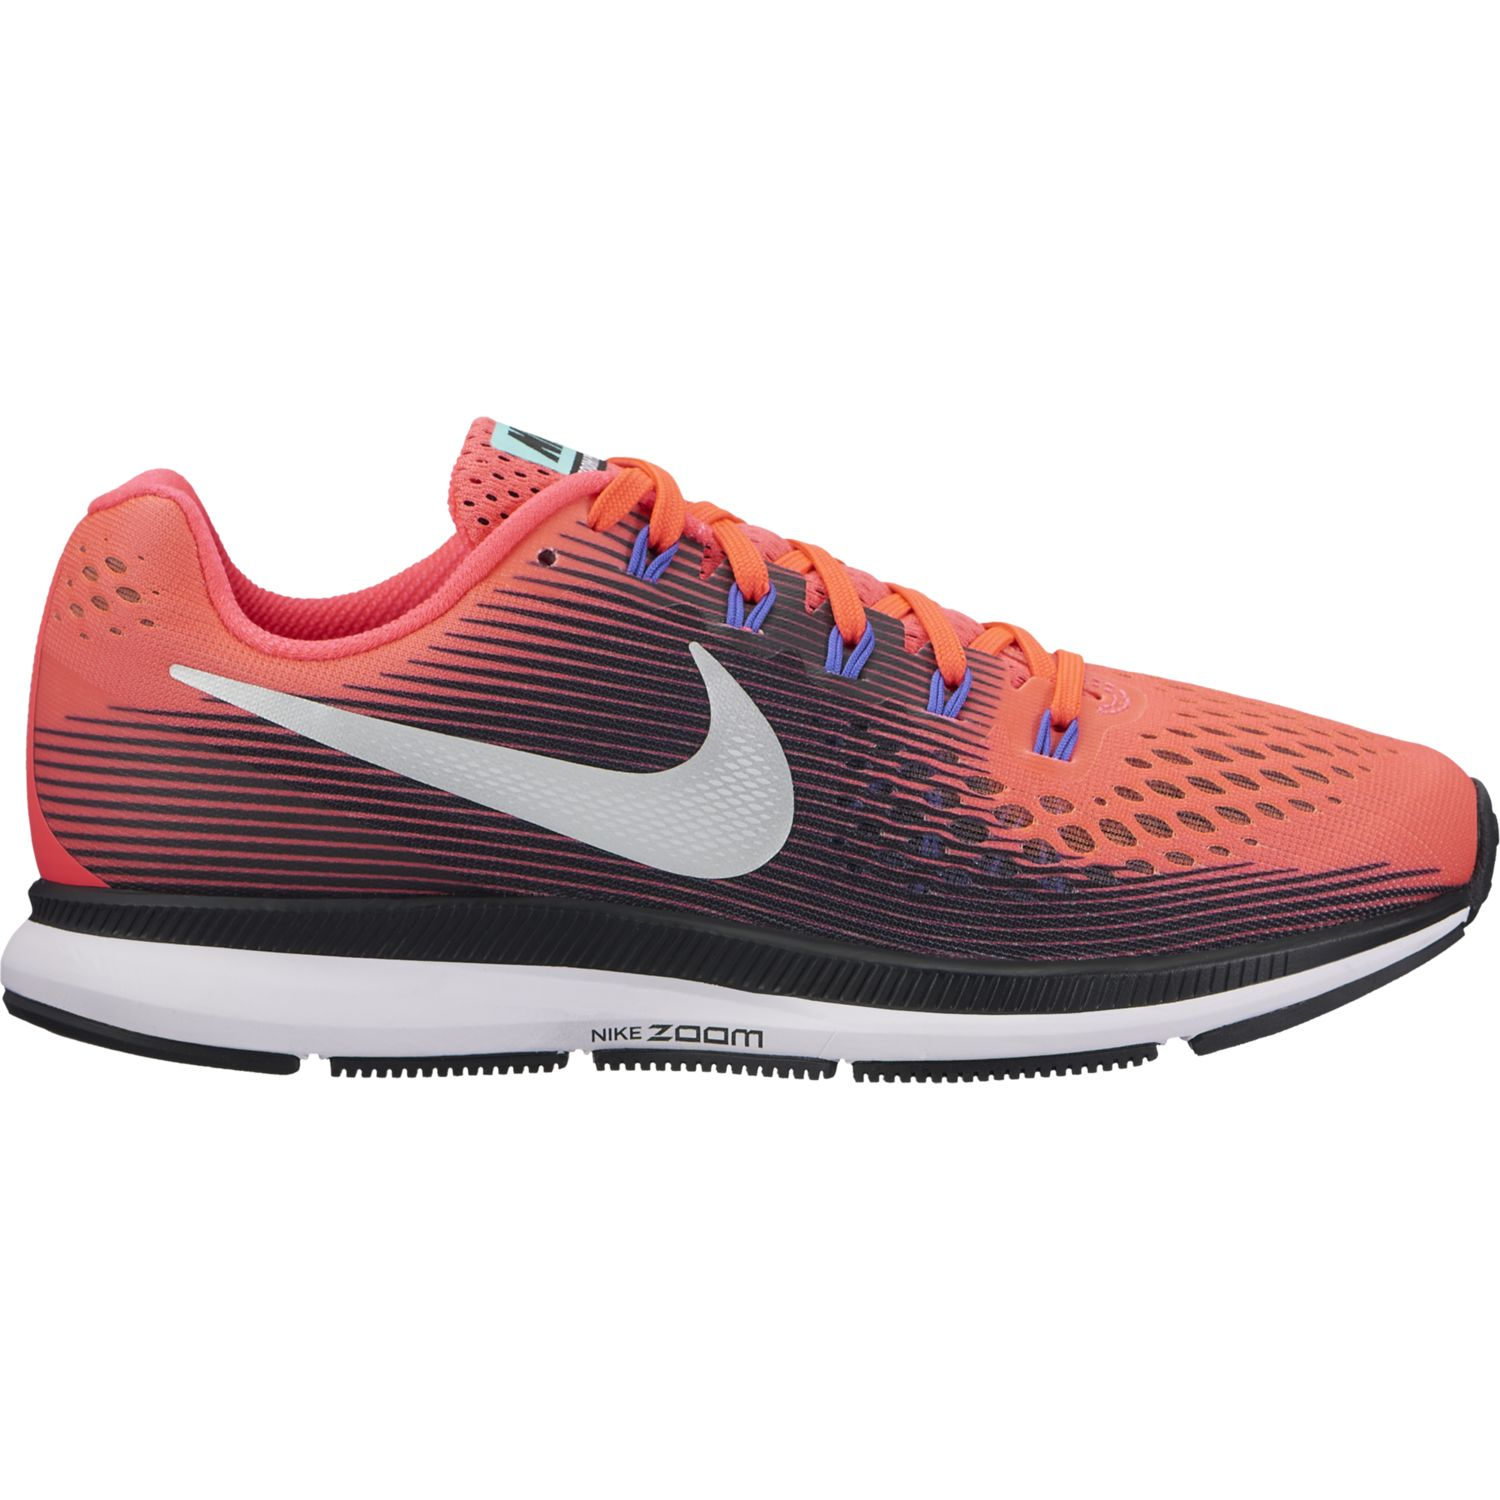 Nike Lady Air Zoom Pegasus 34 in Schwarz Orange